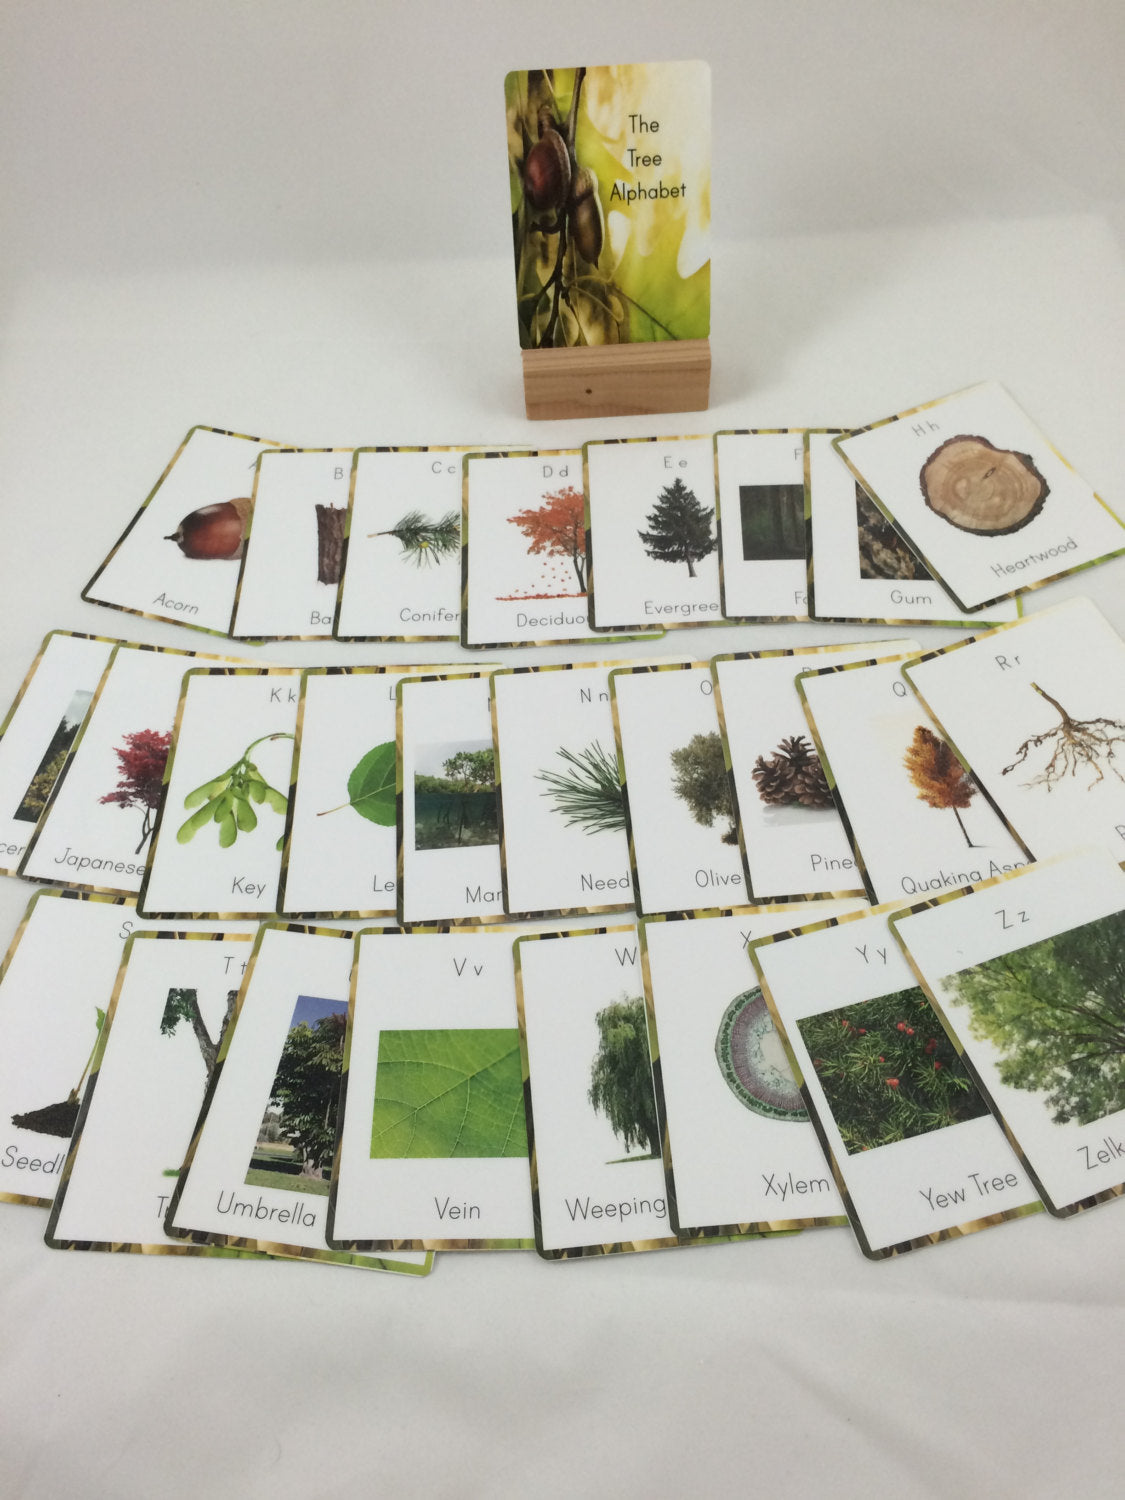 Tree alphabet cards, tree vocabulary cards, nature wall decor